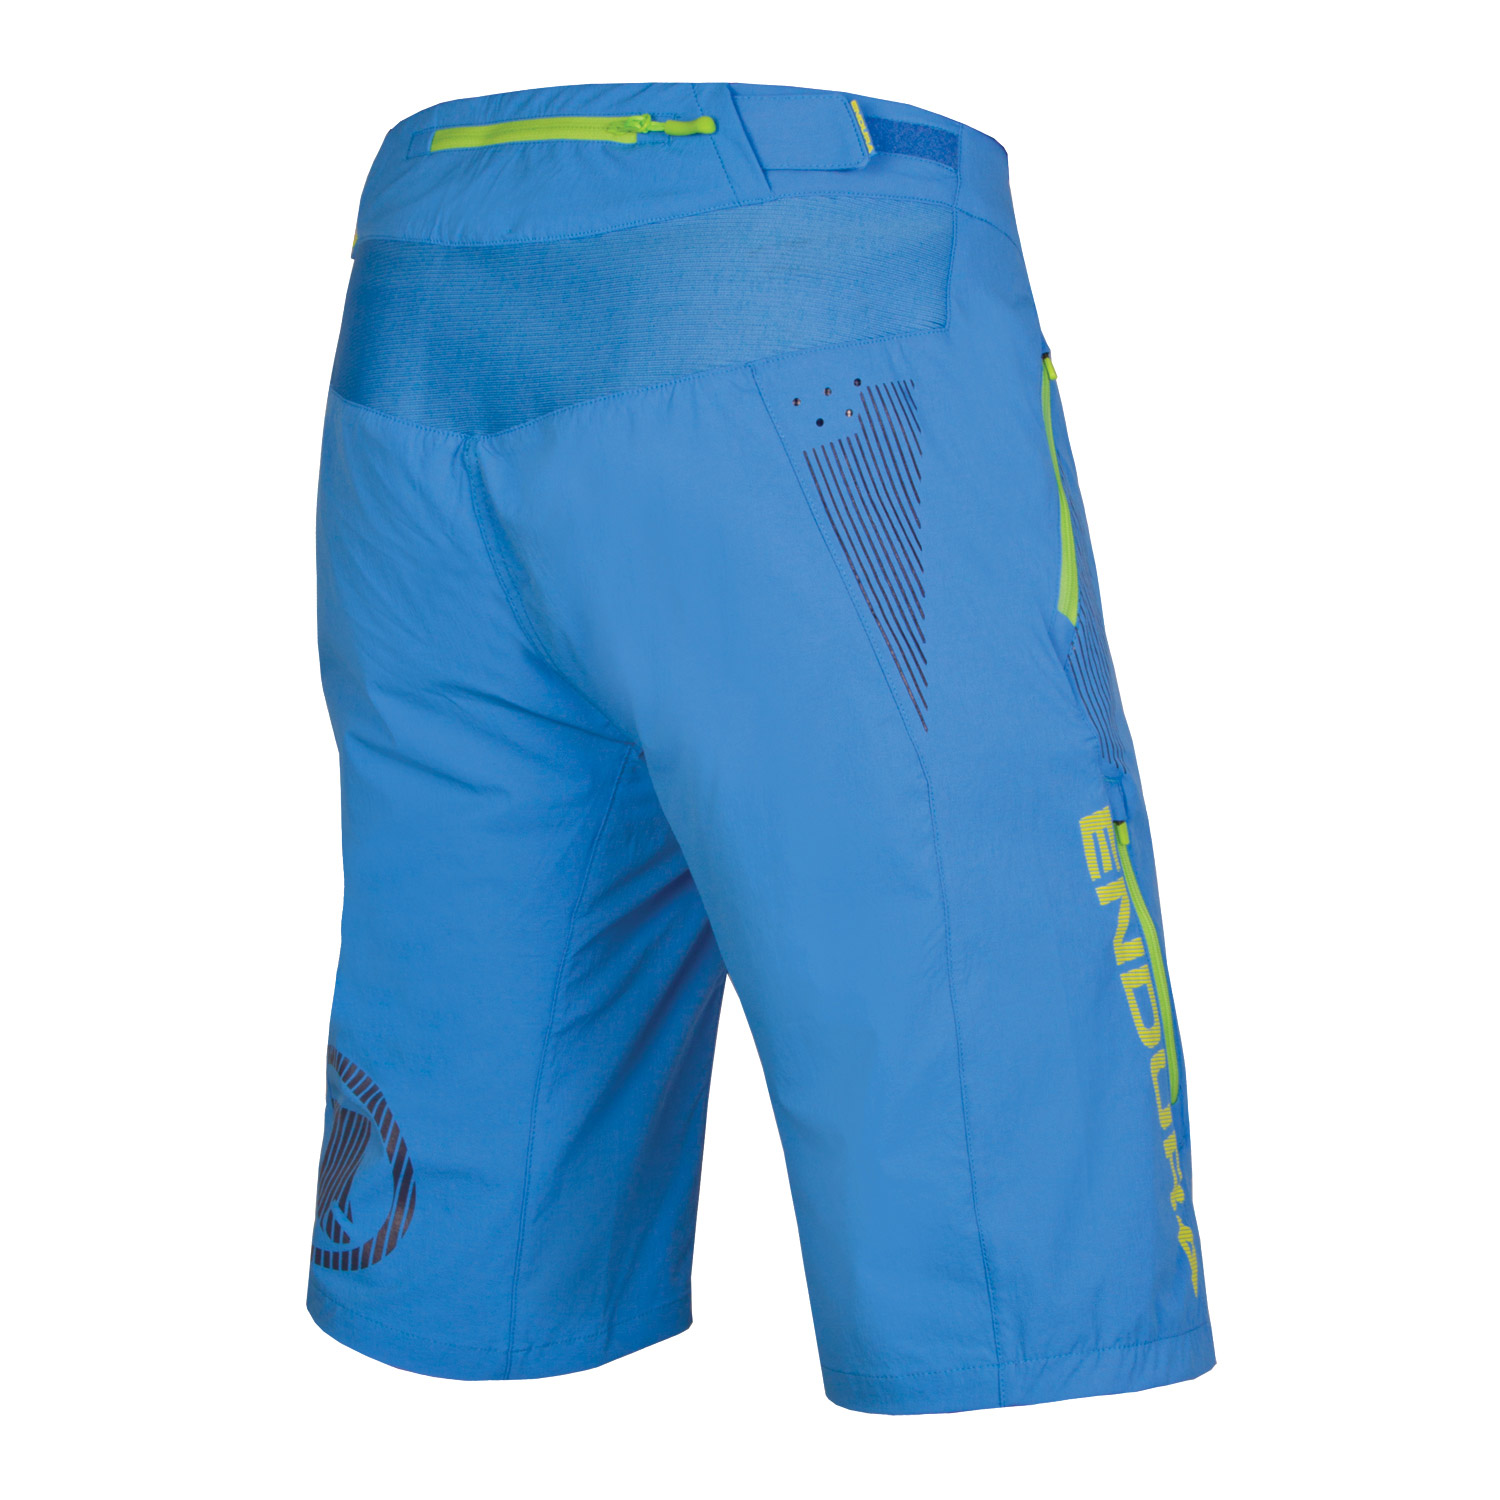 SingleTrack Lite Short II with Liner back